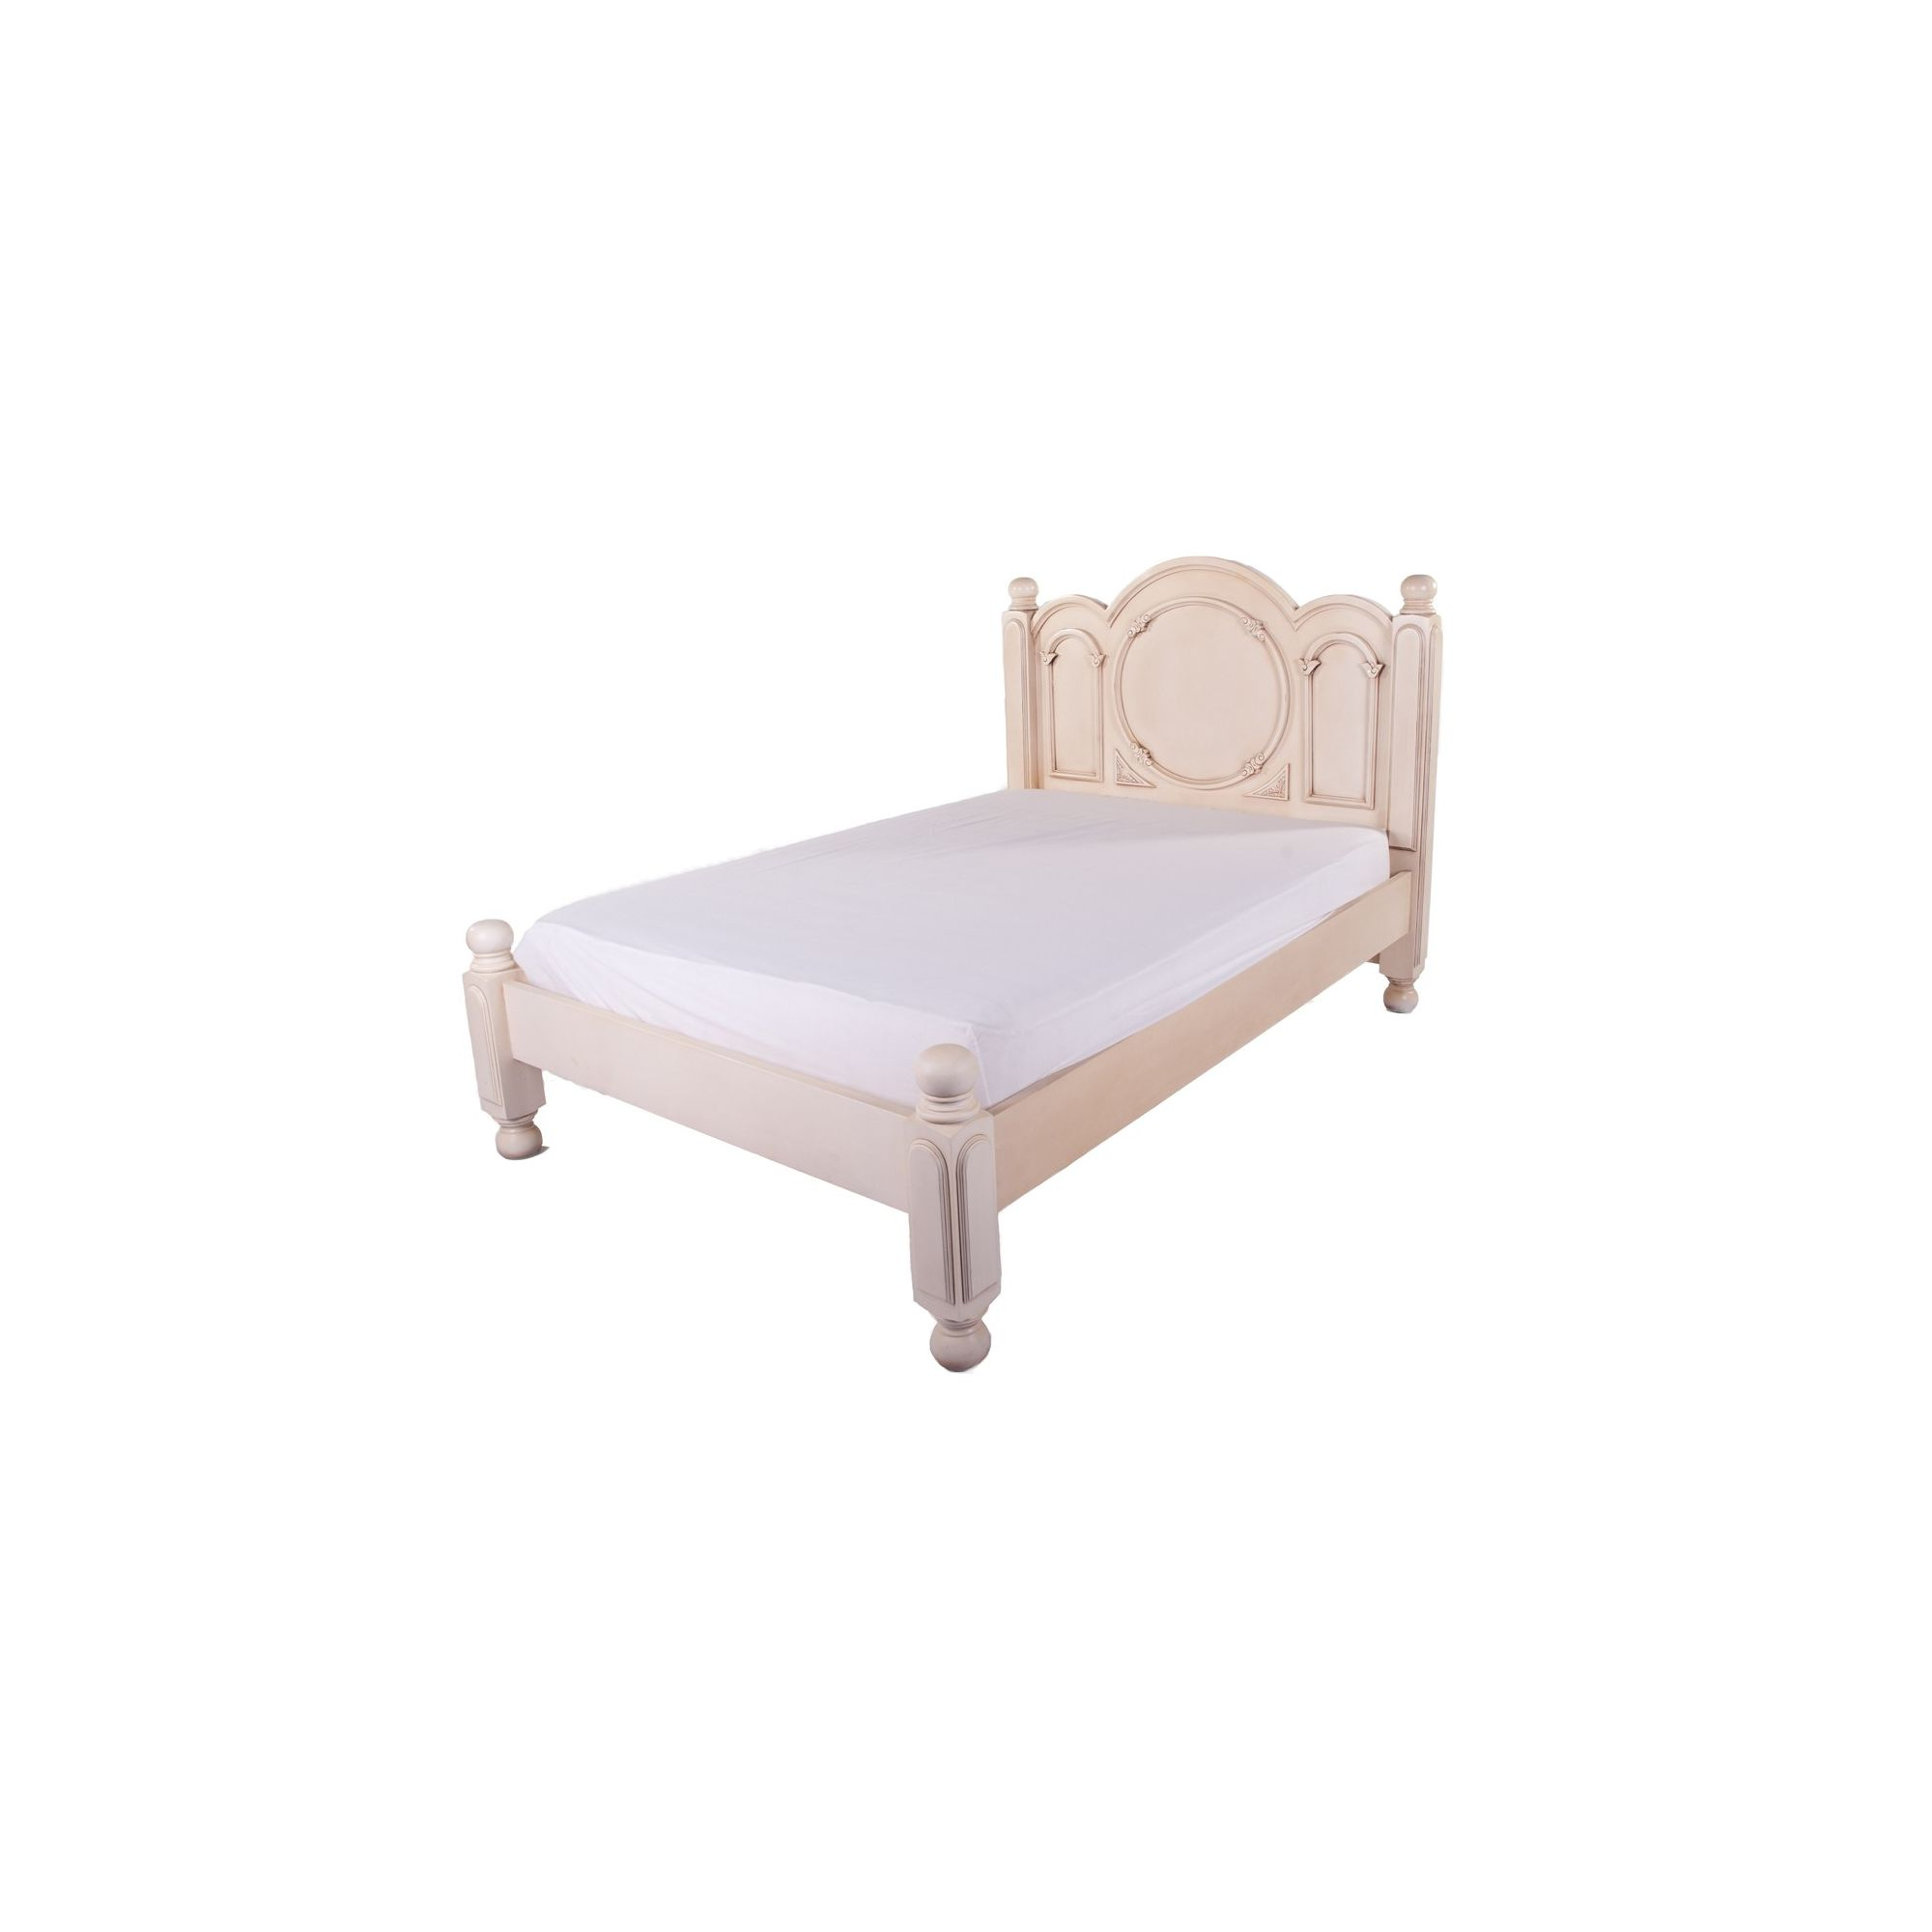 Thorndon Beverley Bed Frame - Double at Tesco Direct